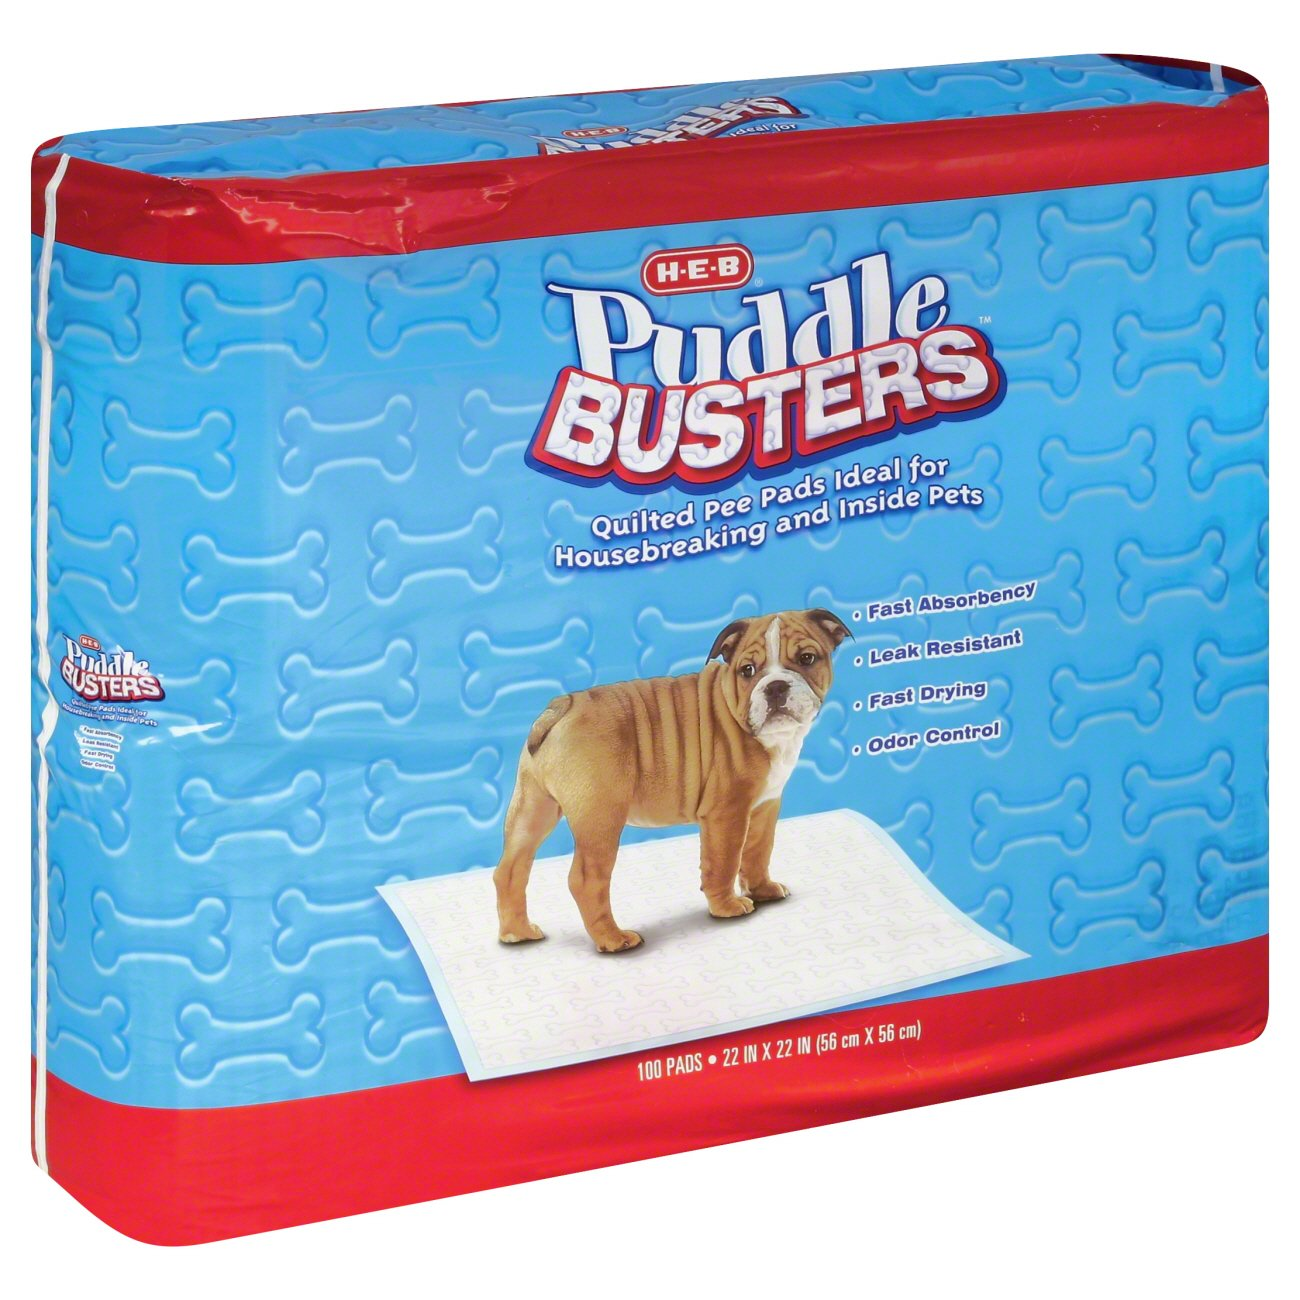 H‑E‑B Puddle Busters Pee Pads for Pets ‑ Shop Potty Training at HEB